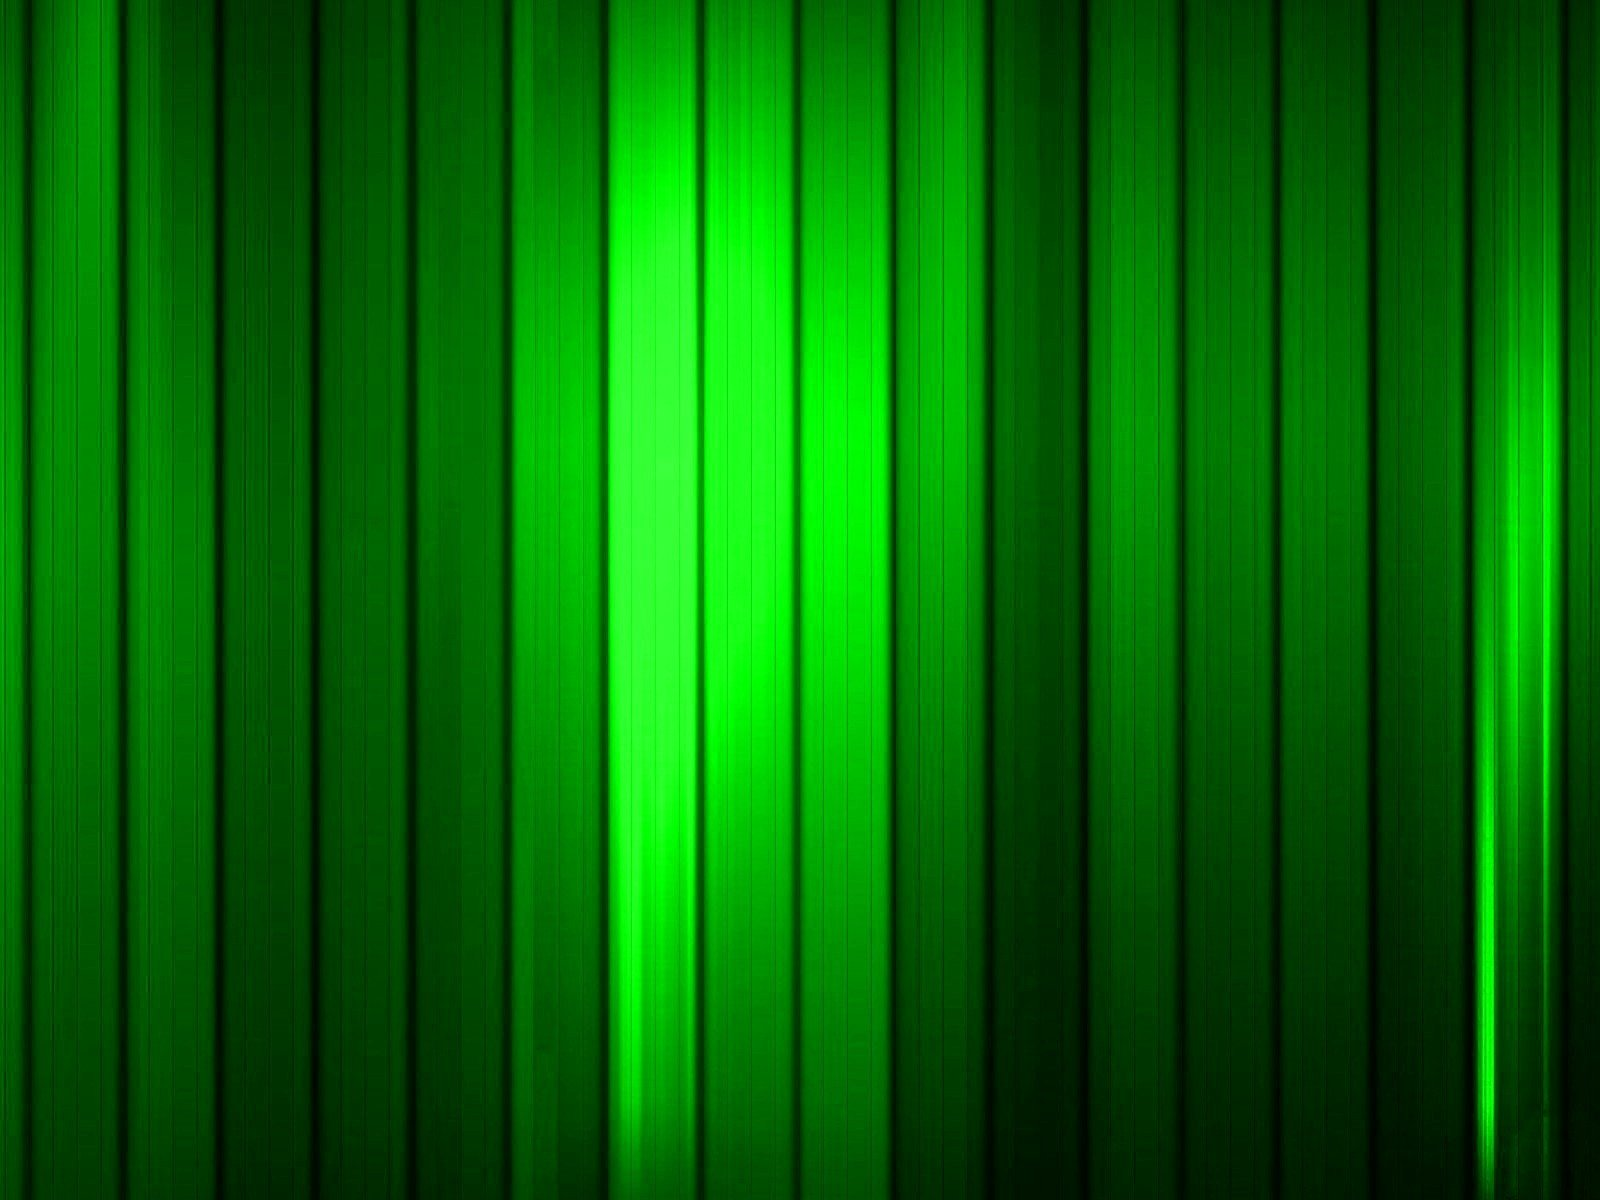 Green Abstract Wallpaper 1600x1200 Green Abstract Textures 1600x1200